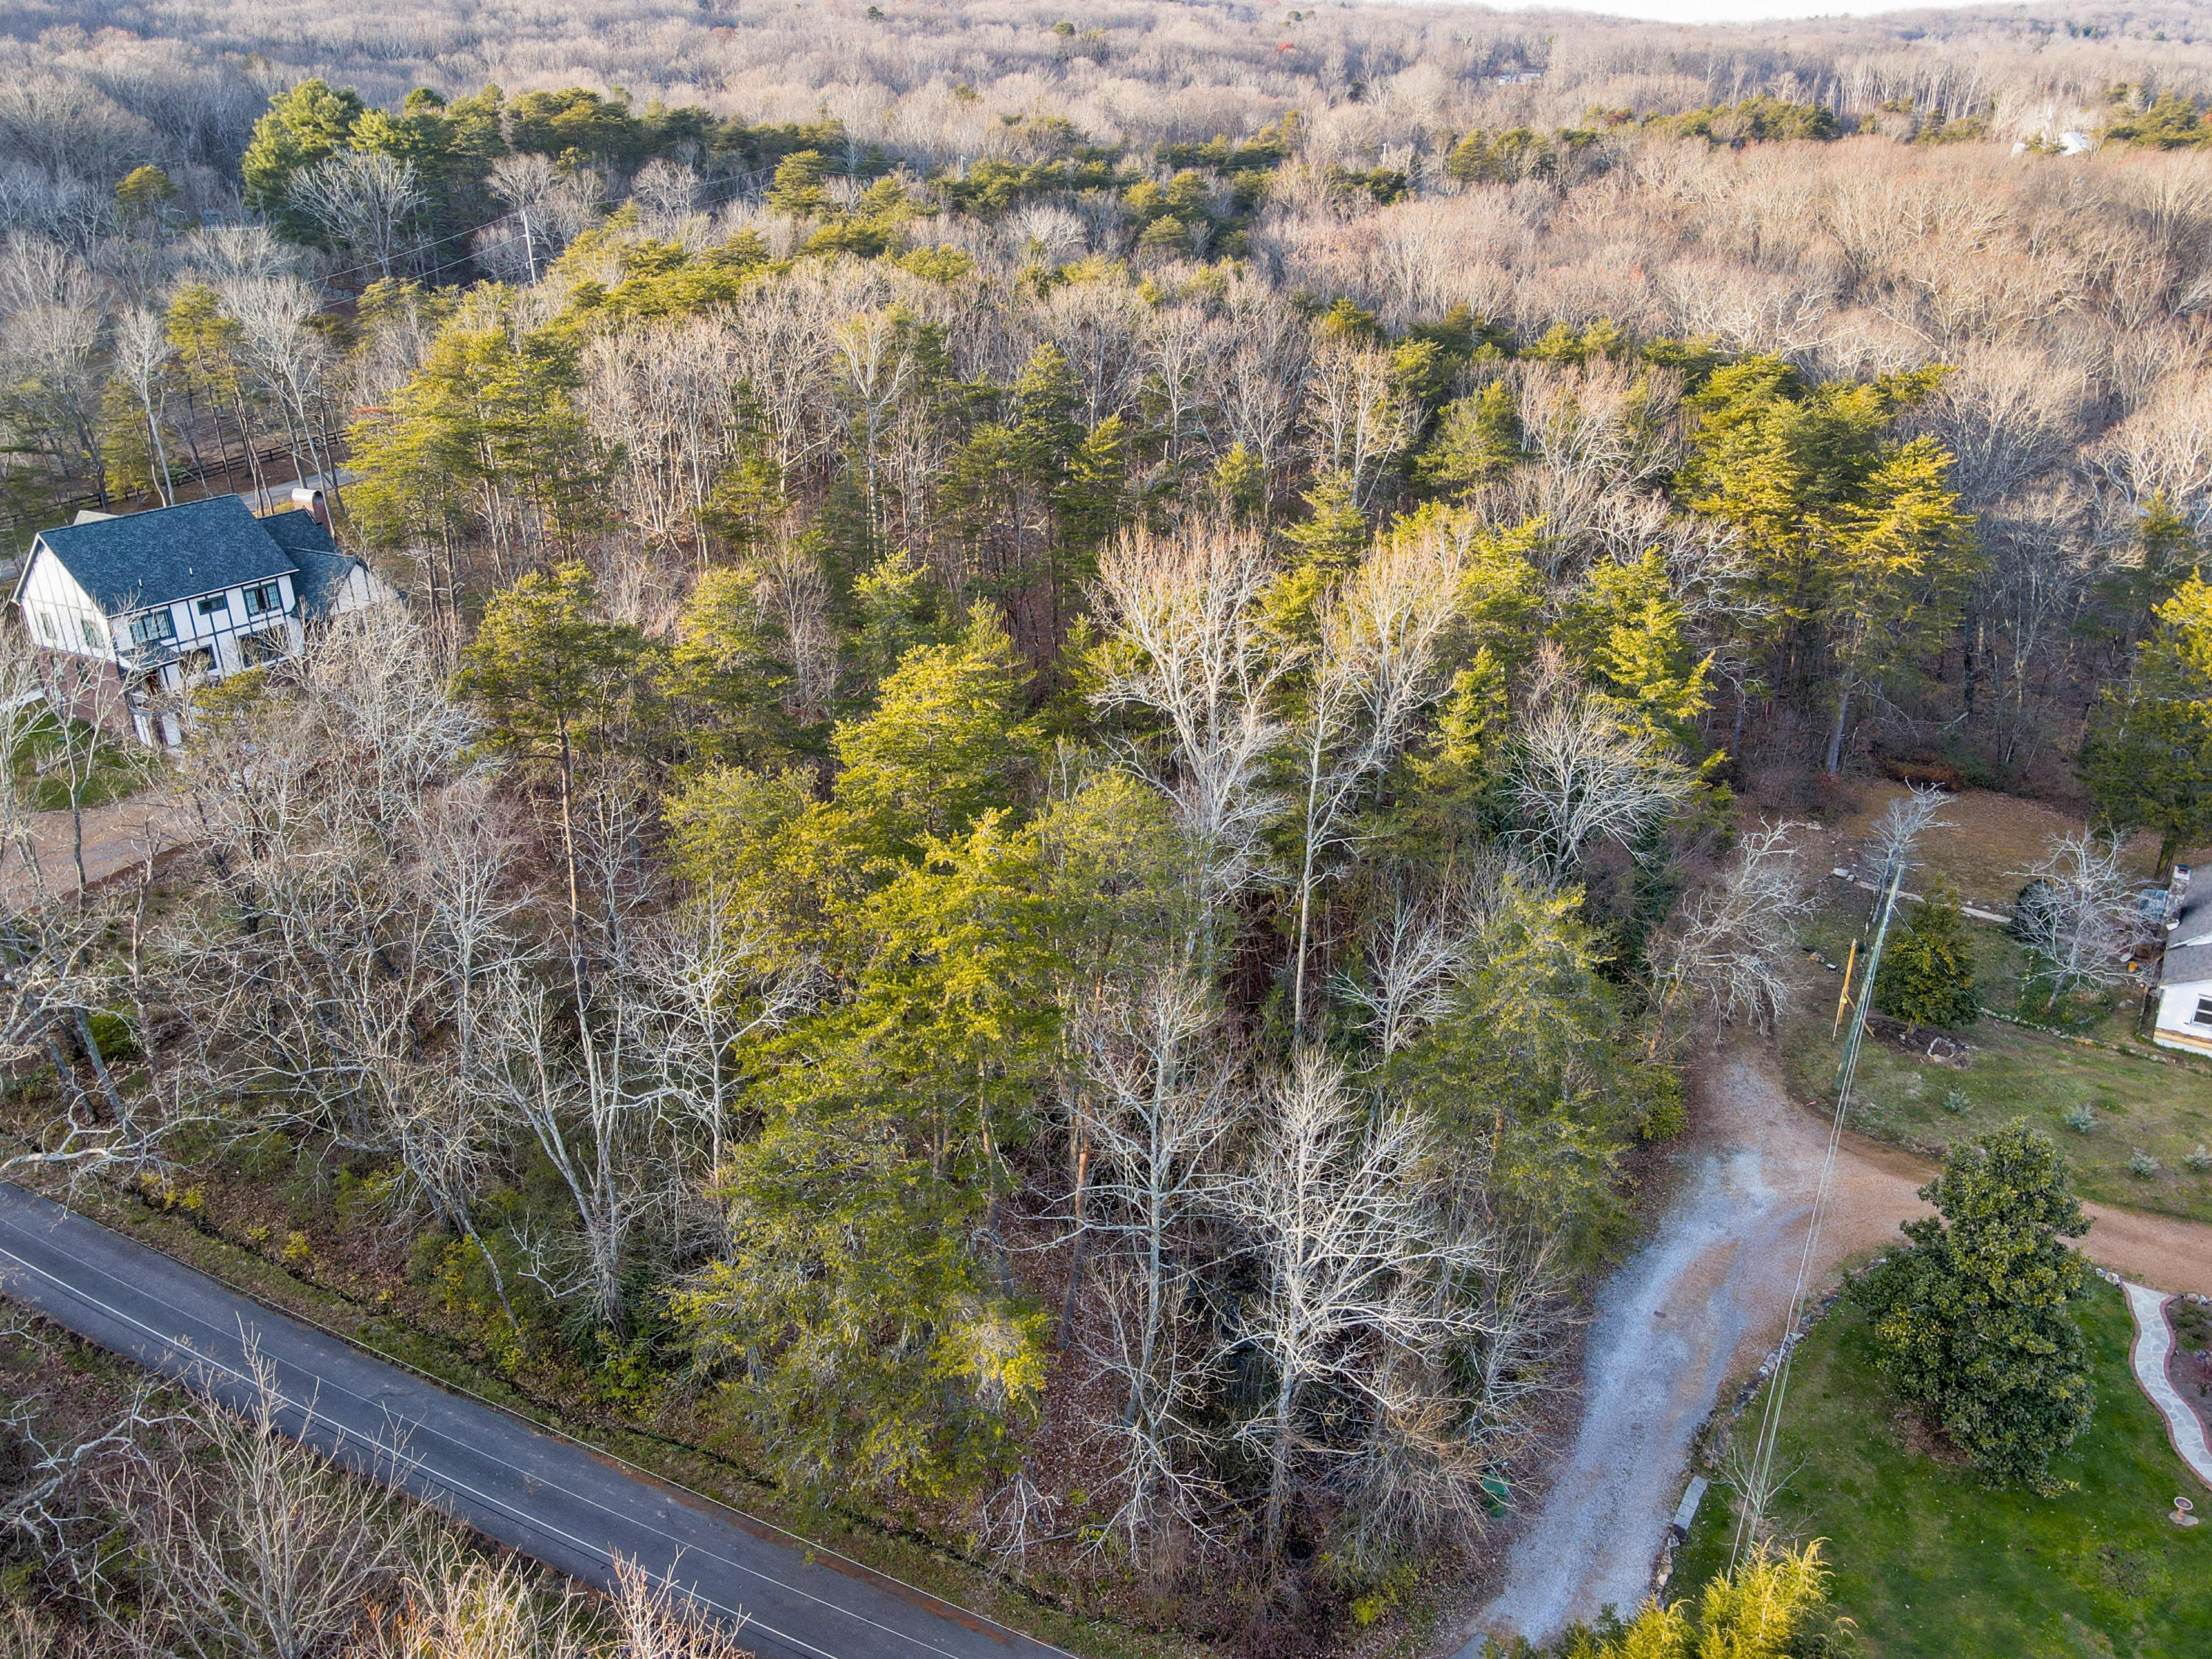 71 Mccallie Ln, Lookout Mountain, GA 30750